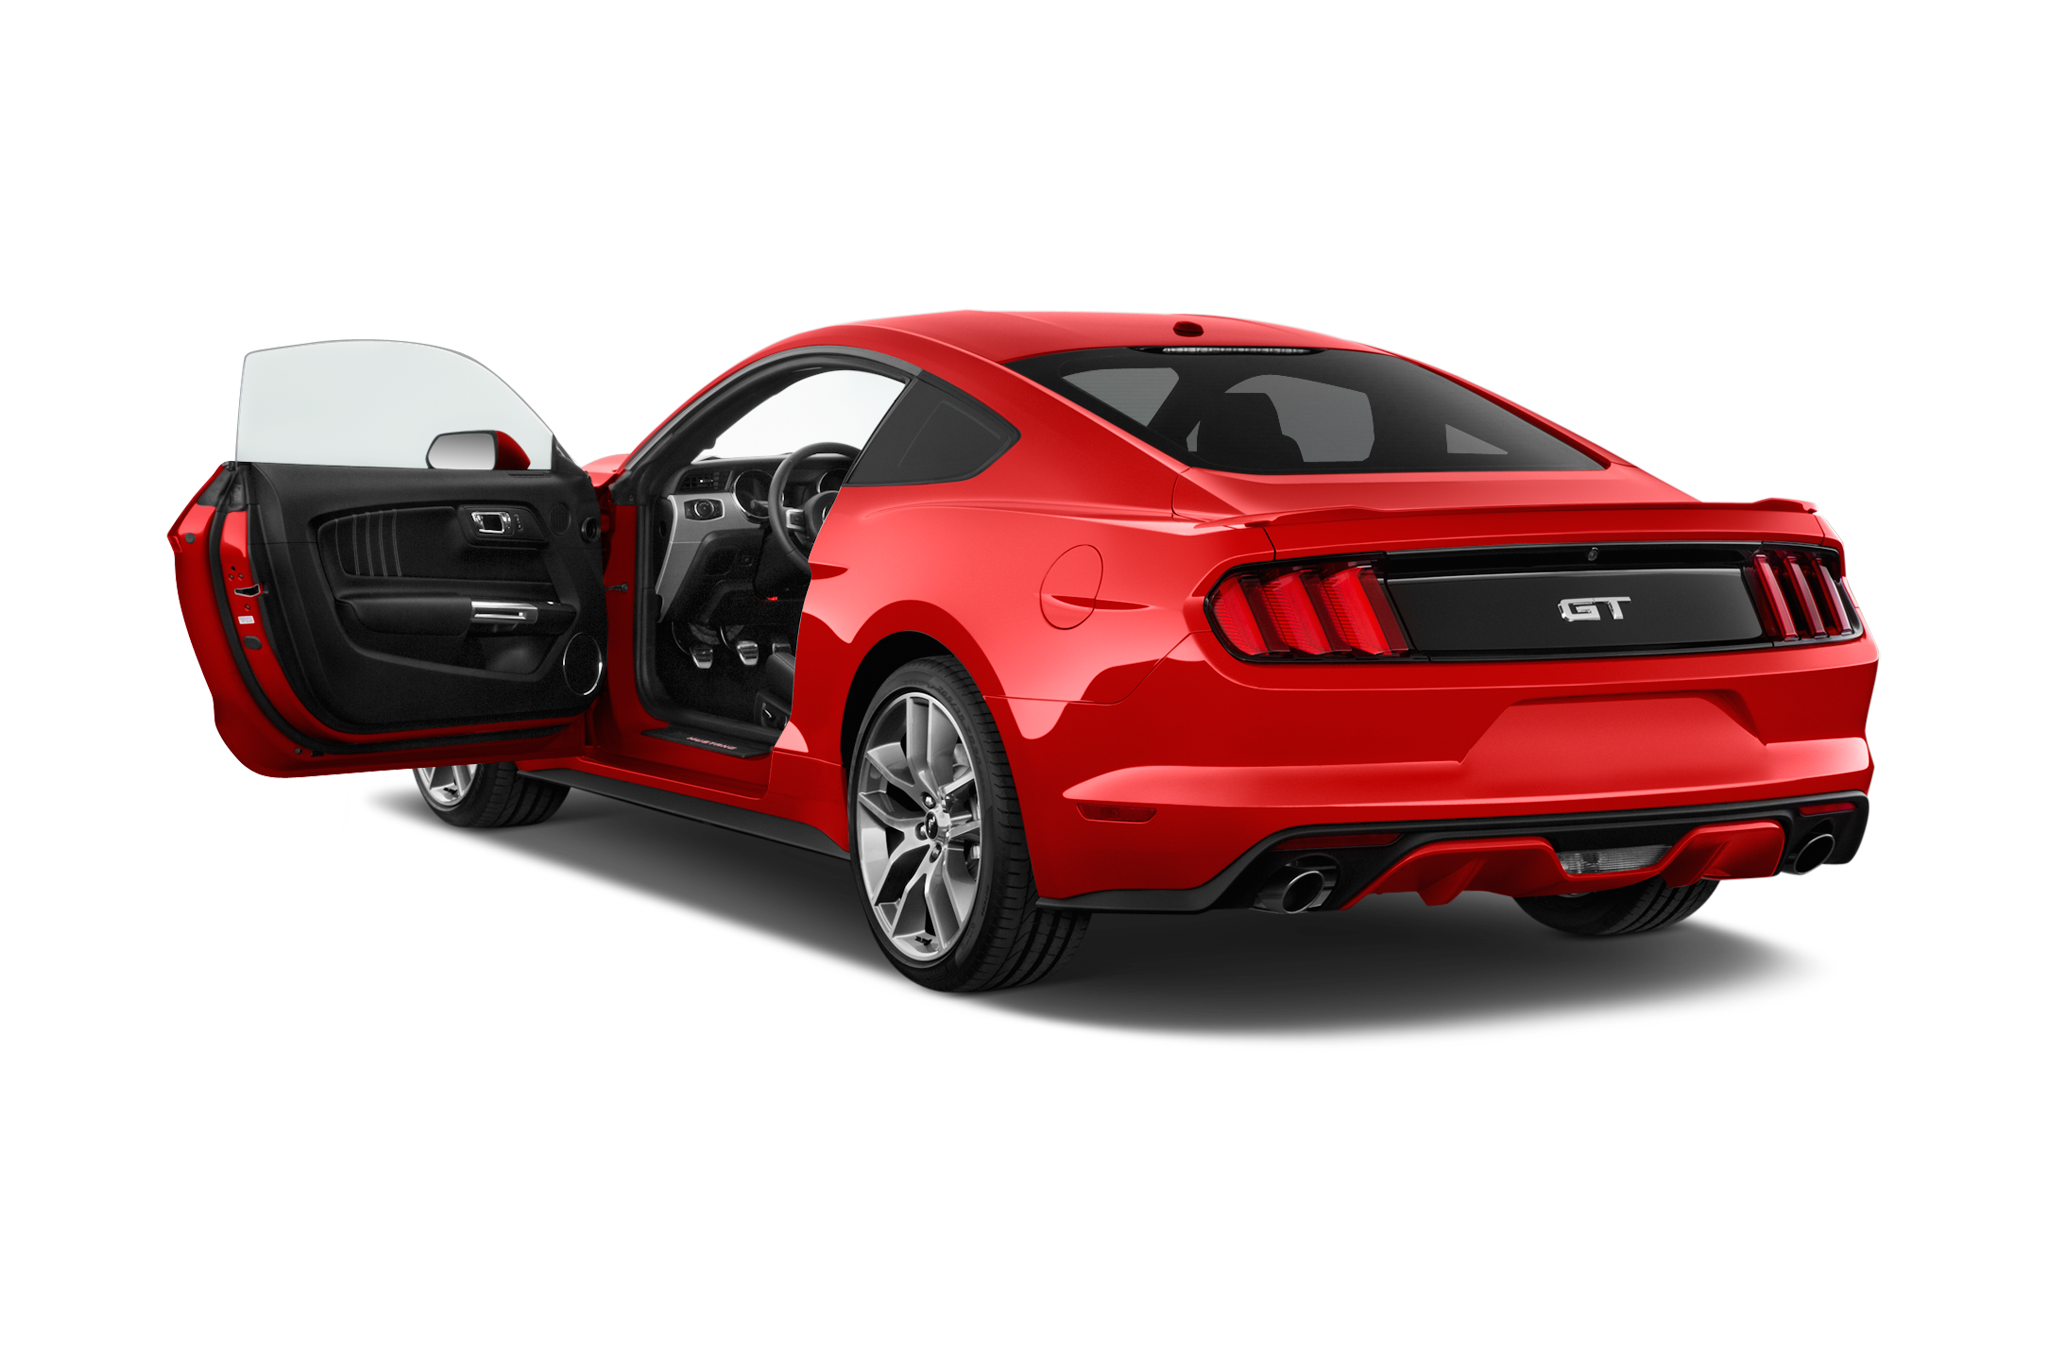 Ford Mustang Silver Car Png Image Ford Mustang Mustang Muscle Cars Mustang